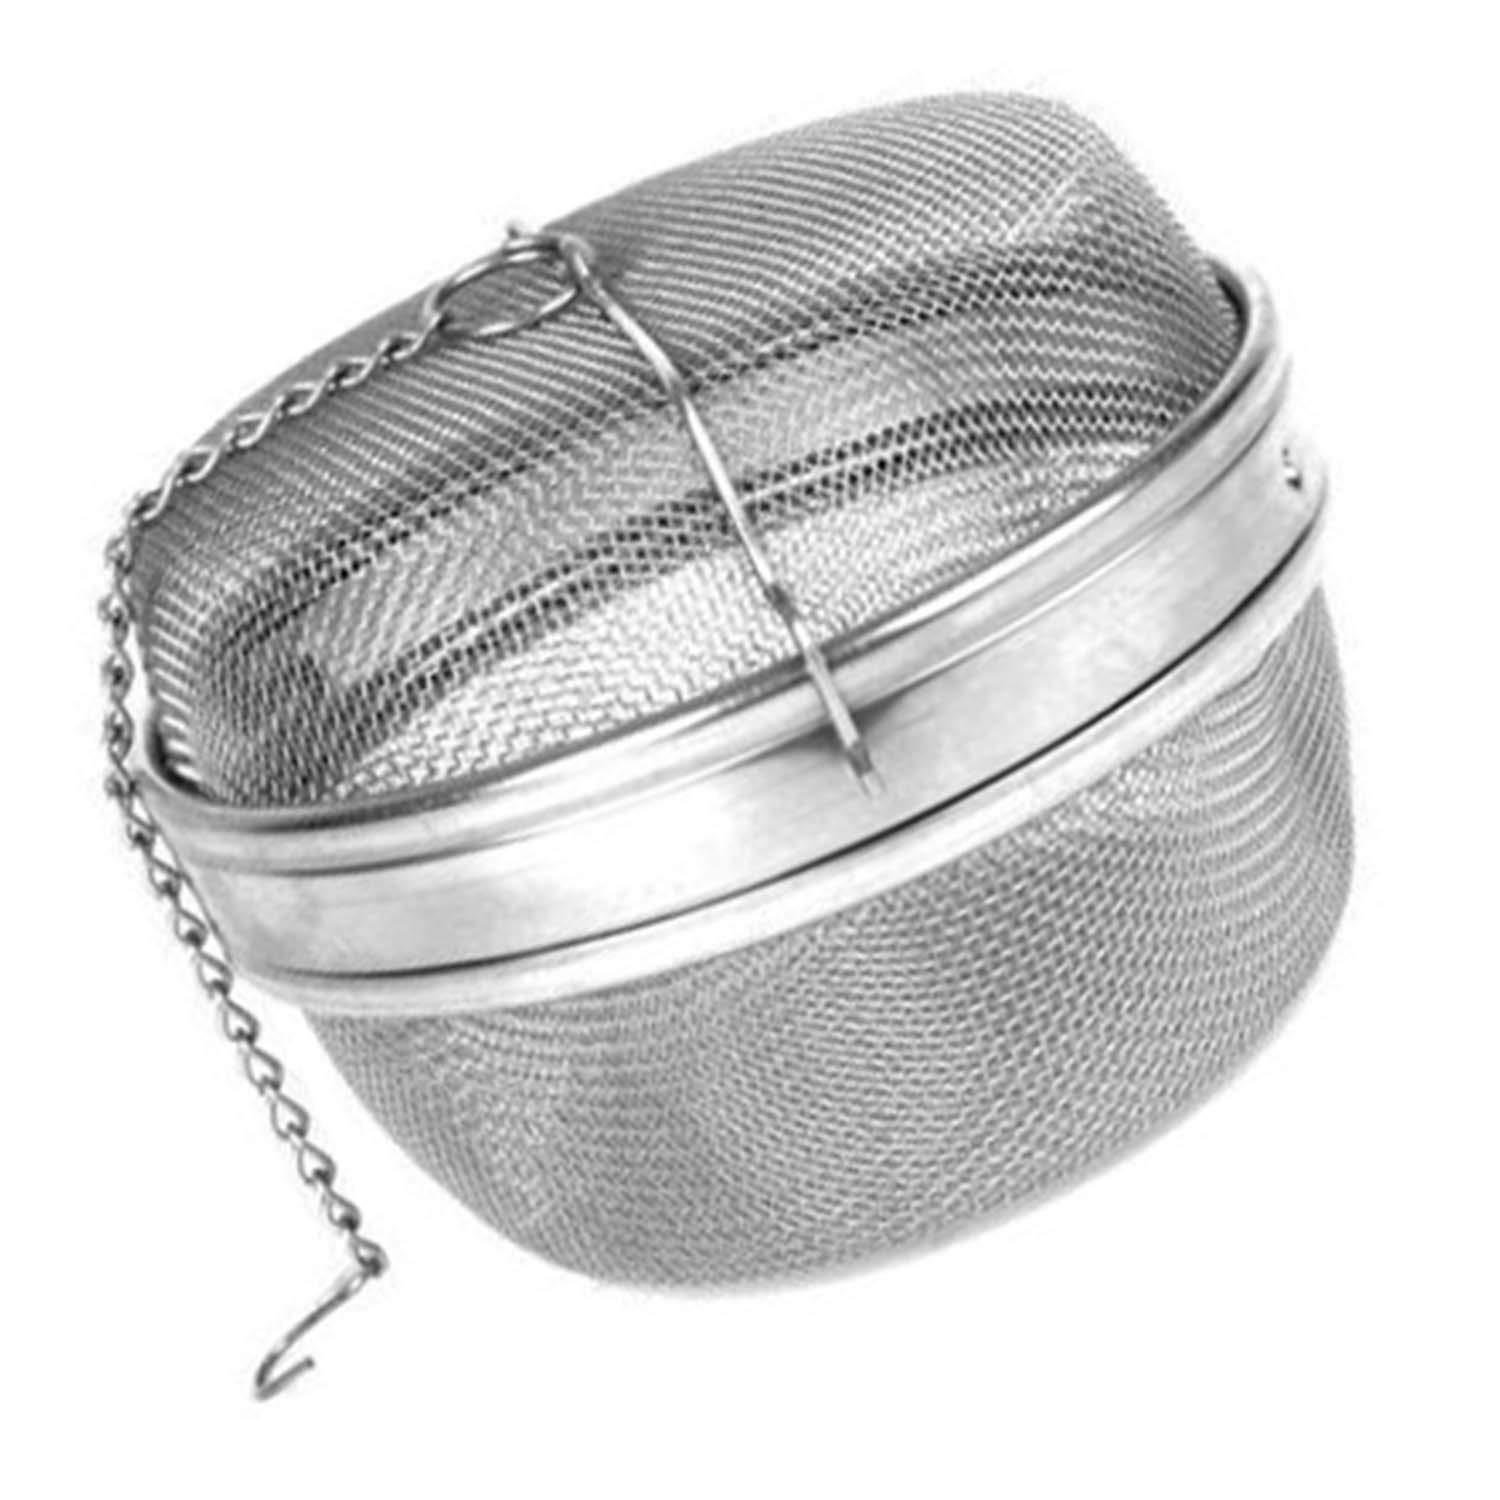 Spice Ball Herb Infuser Extra Large 4.5''D, Stainless Steel